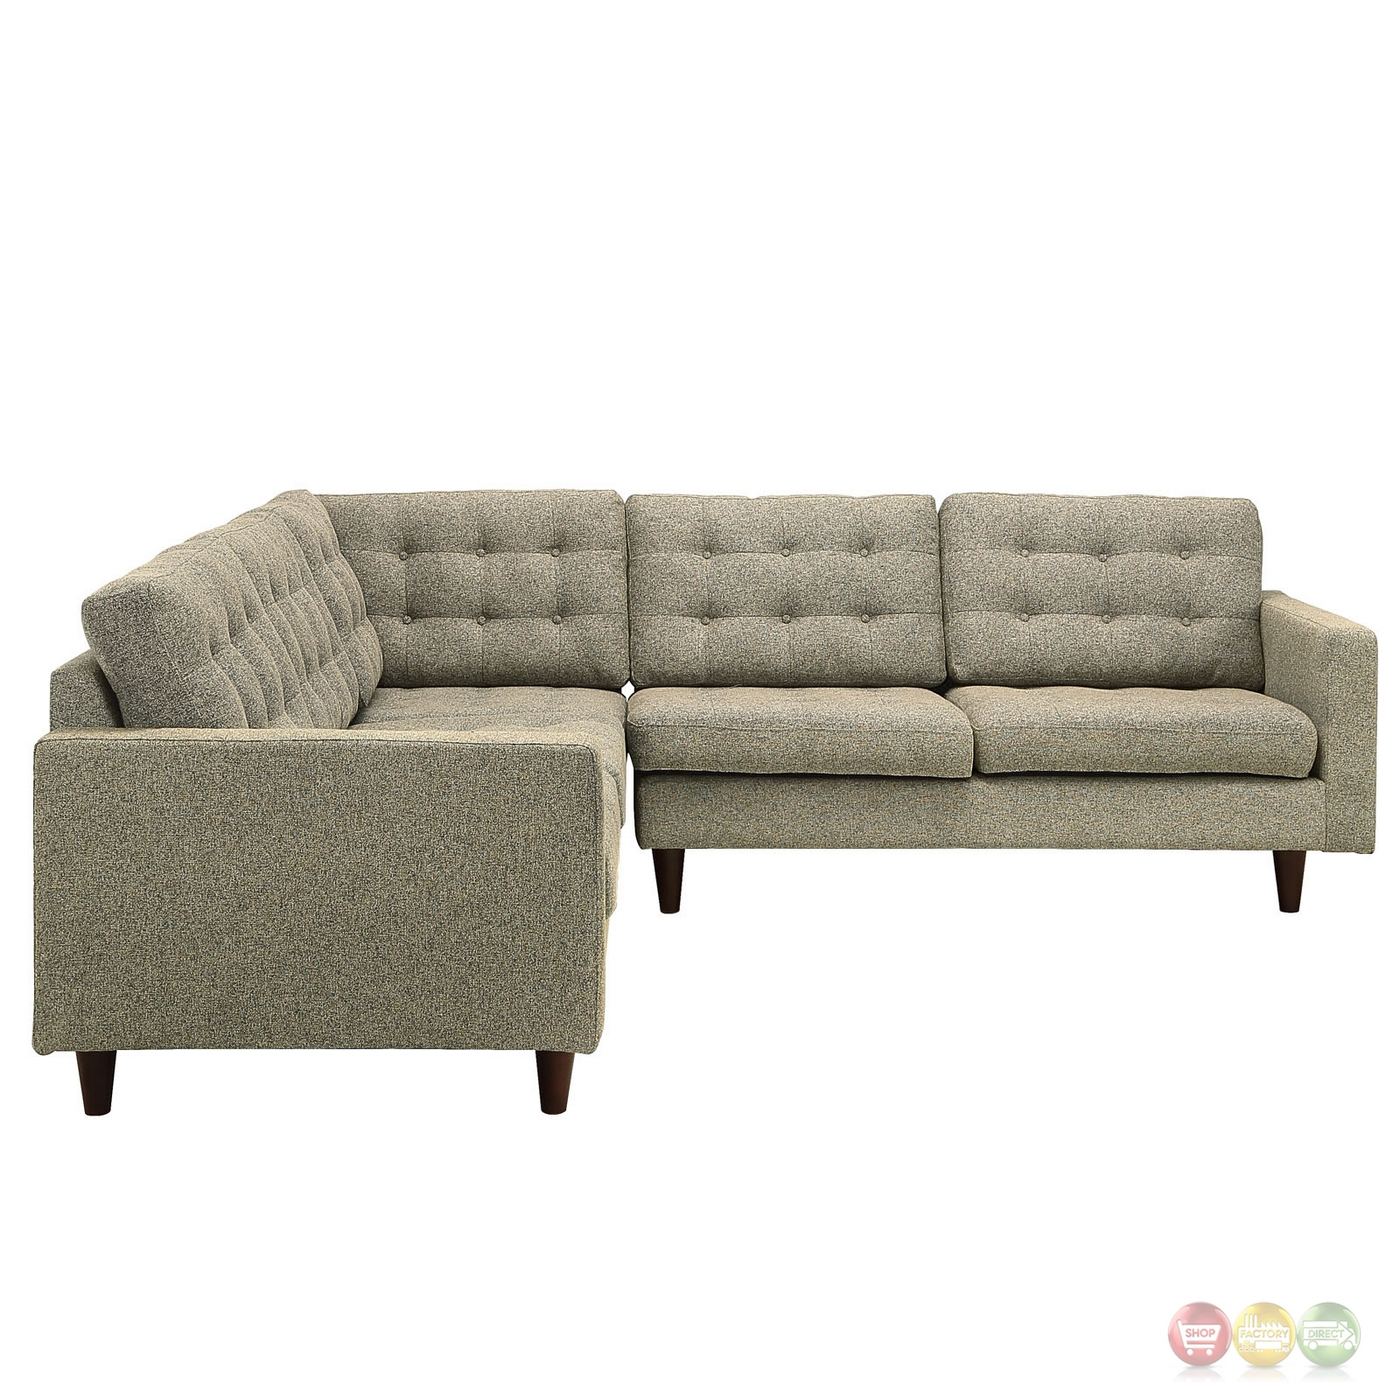 oatmeal sofa set navy blue stretch cover empress 3 piece button tufted upholstered sectional